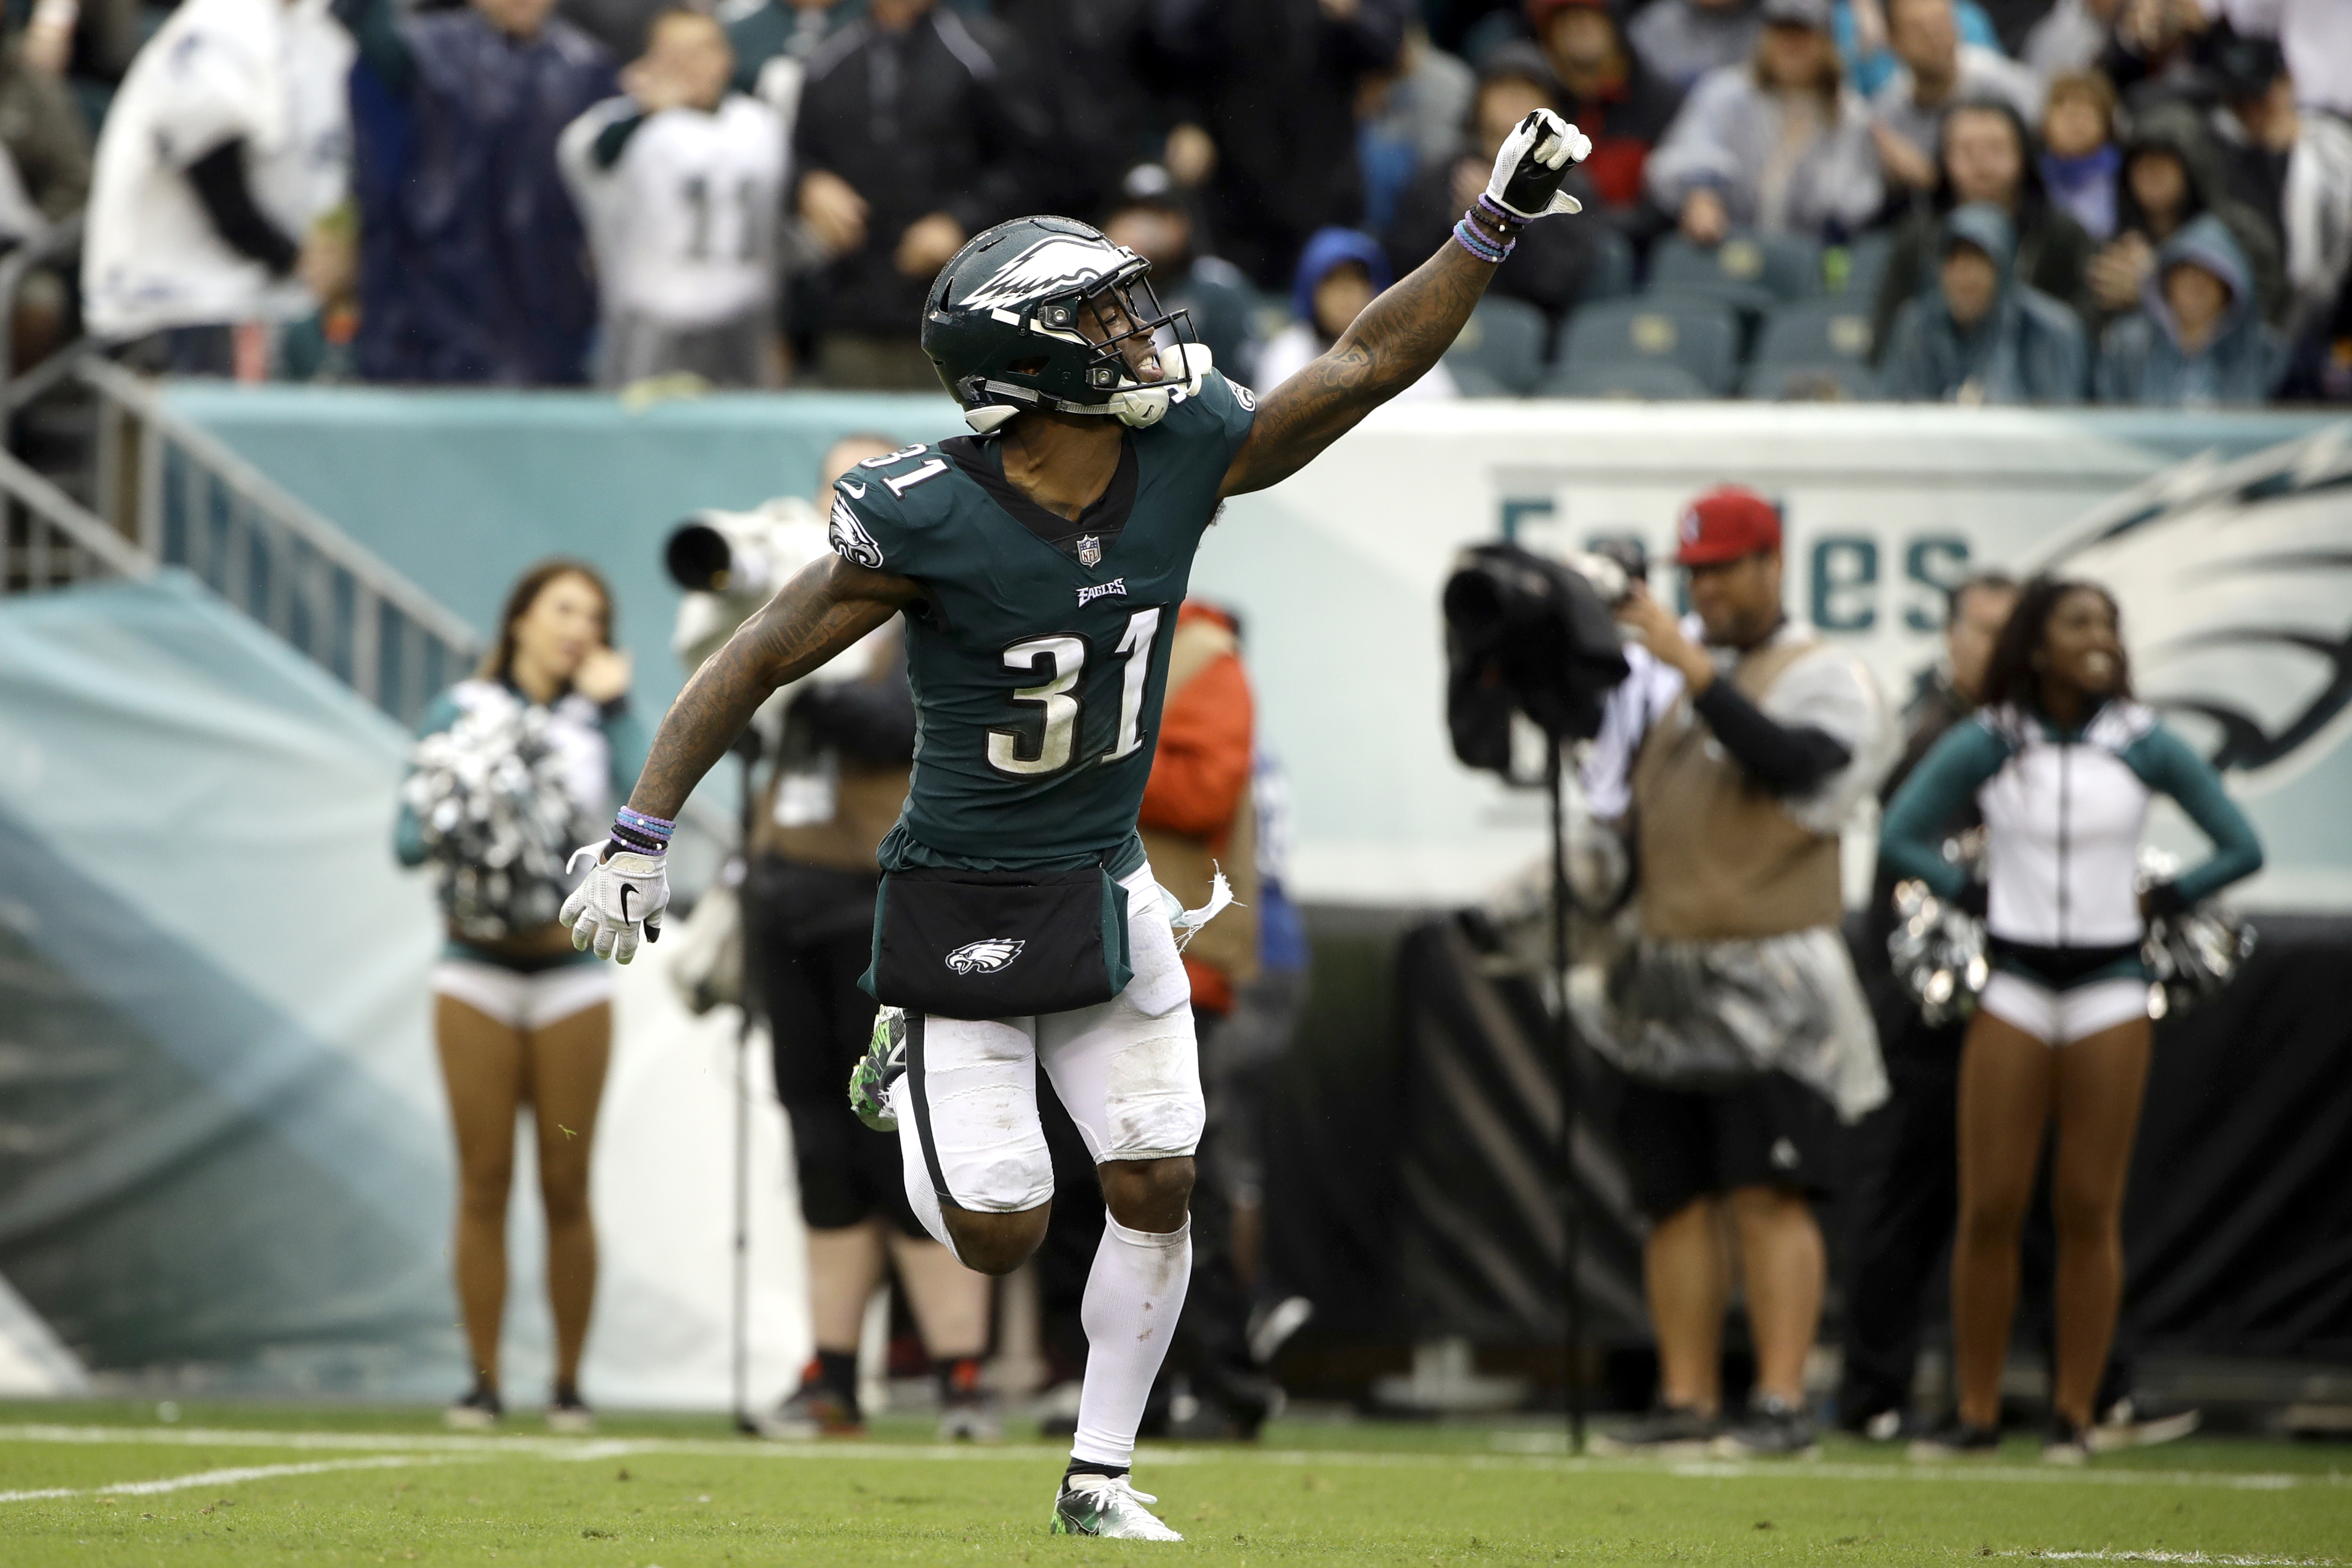 Eagles' Jalen Mills apologizes for fight with NBA player